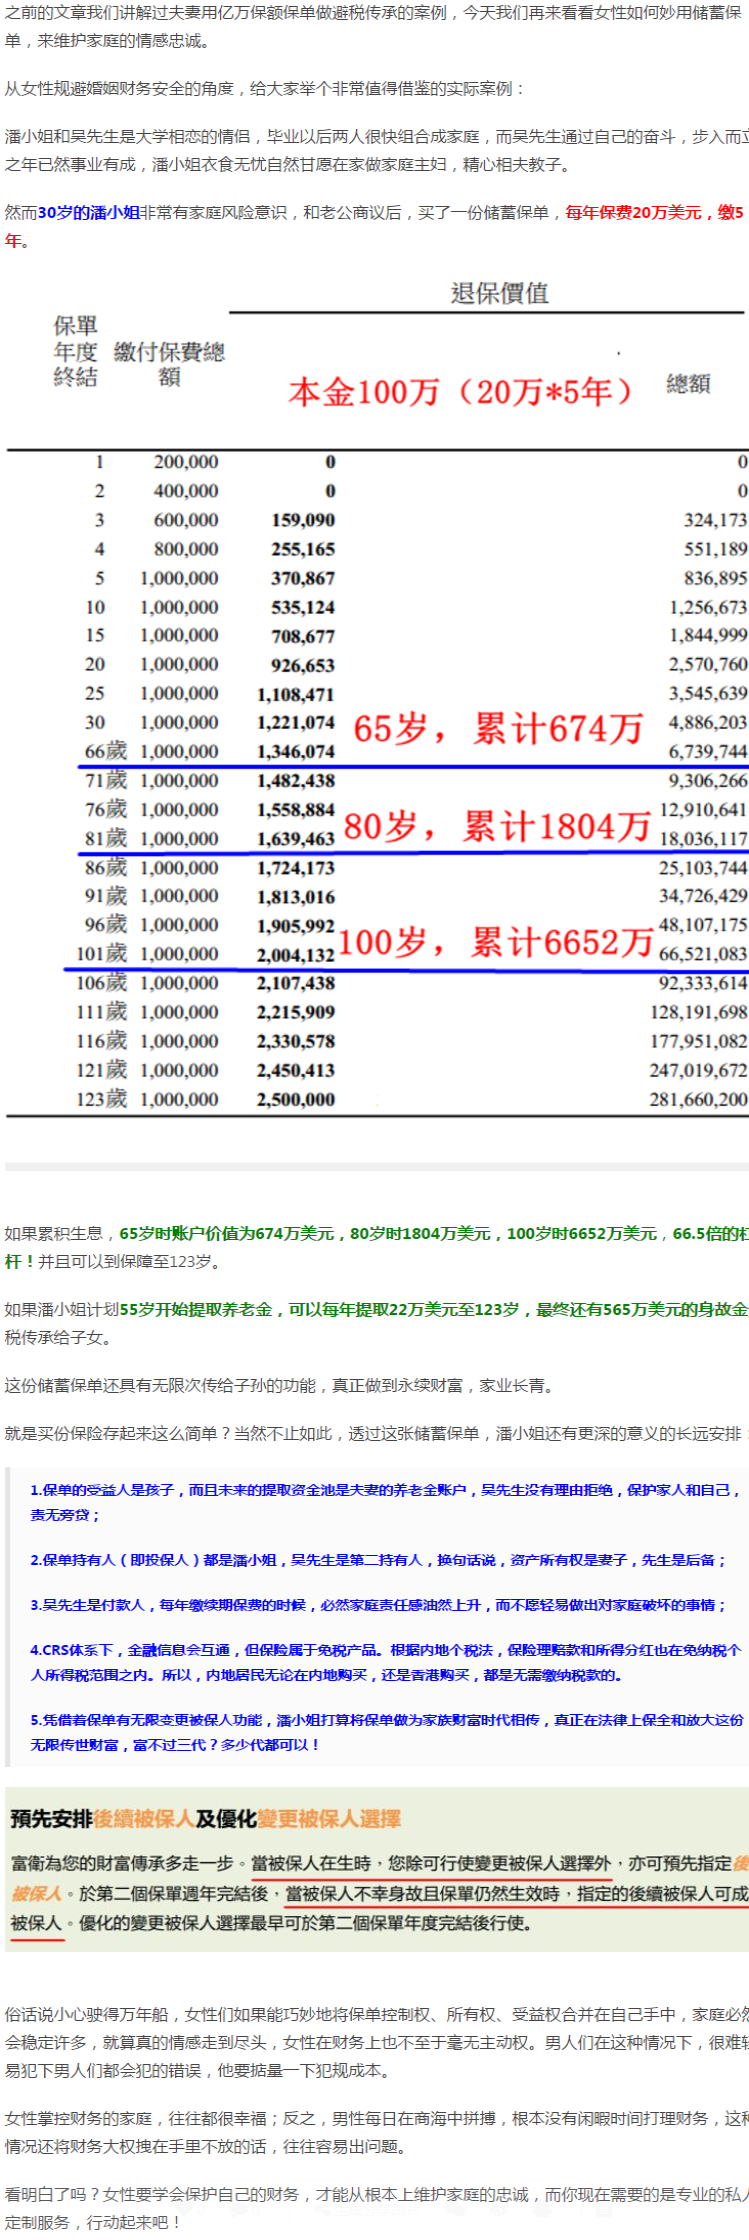 screenshot-www.hkinsu.com-2019.02.01-01-18-48.png